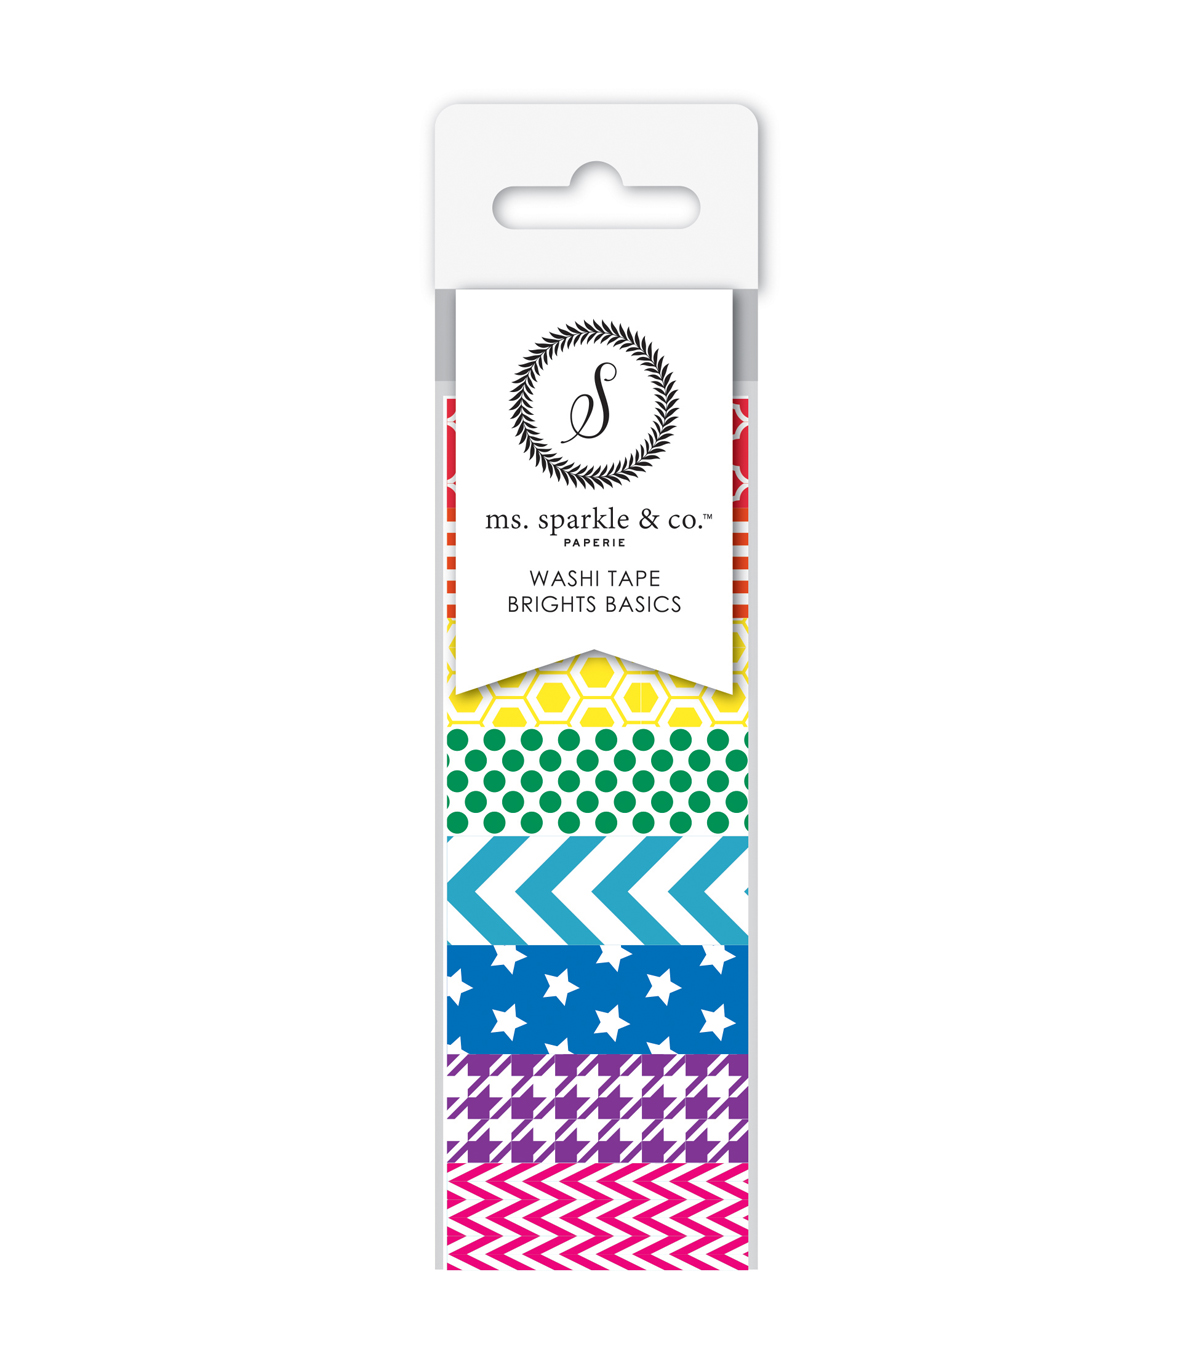 Ms. Sparkle & Co. 8 pk Washi Tapes 0.6 mmx10 yds-Brights Basics